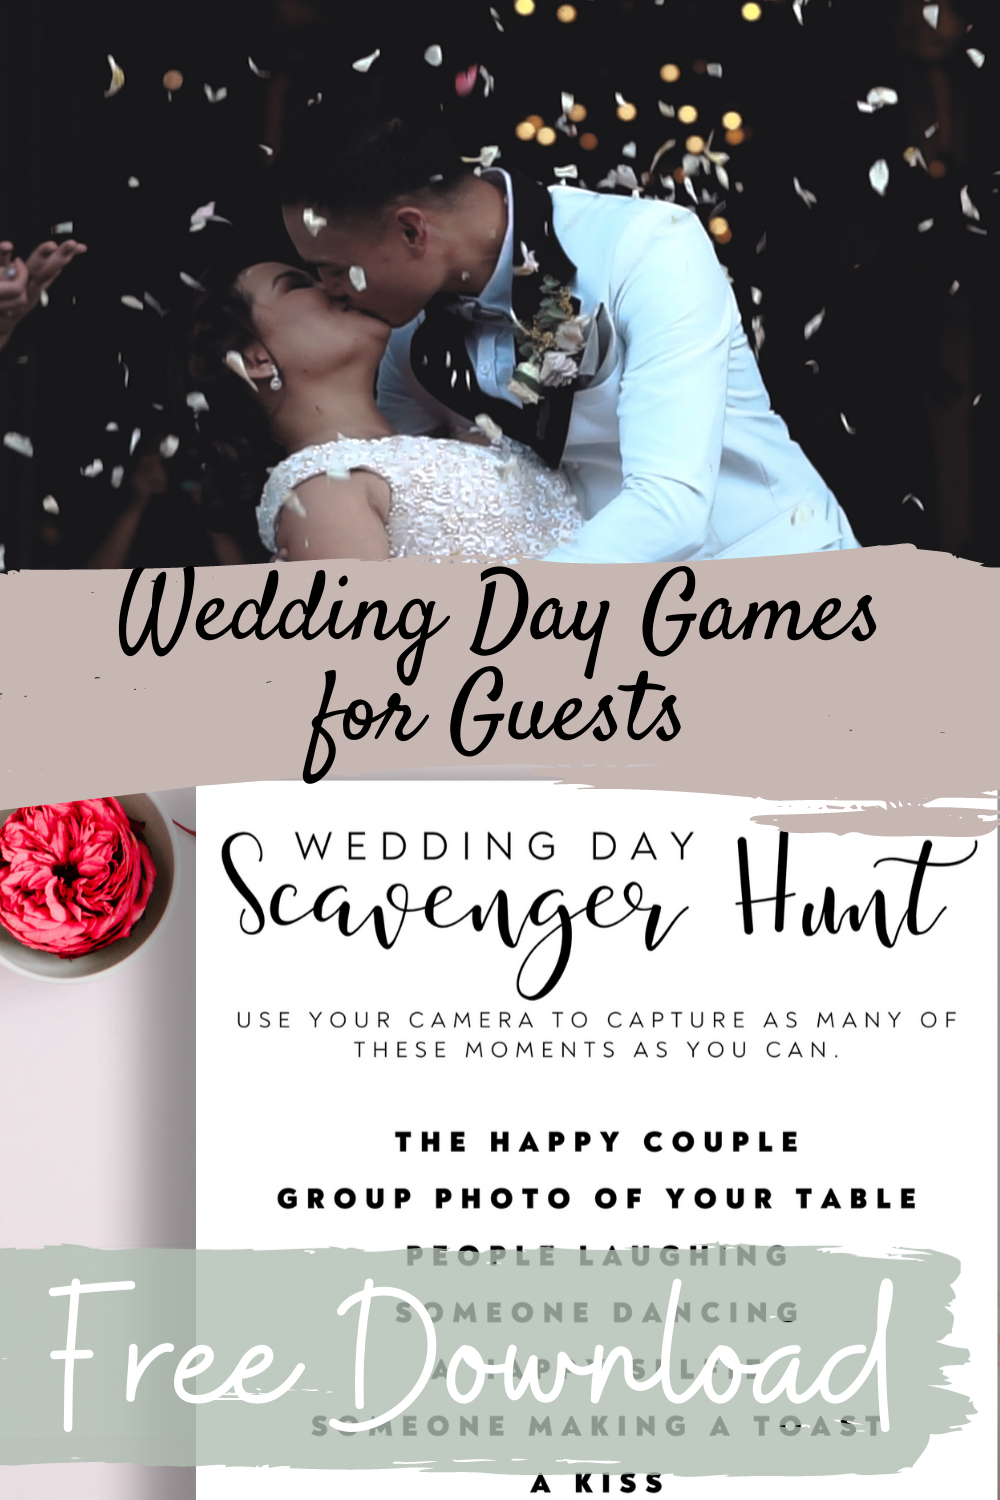 Wedding Day Games for Guests